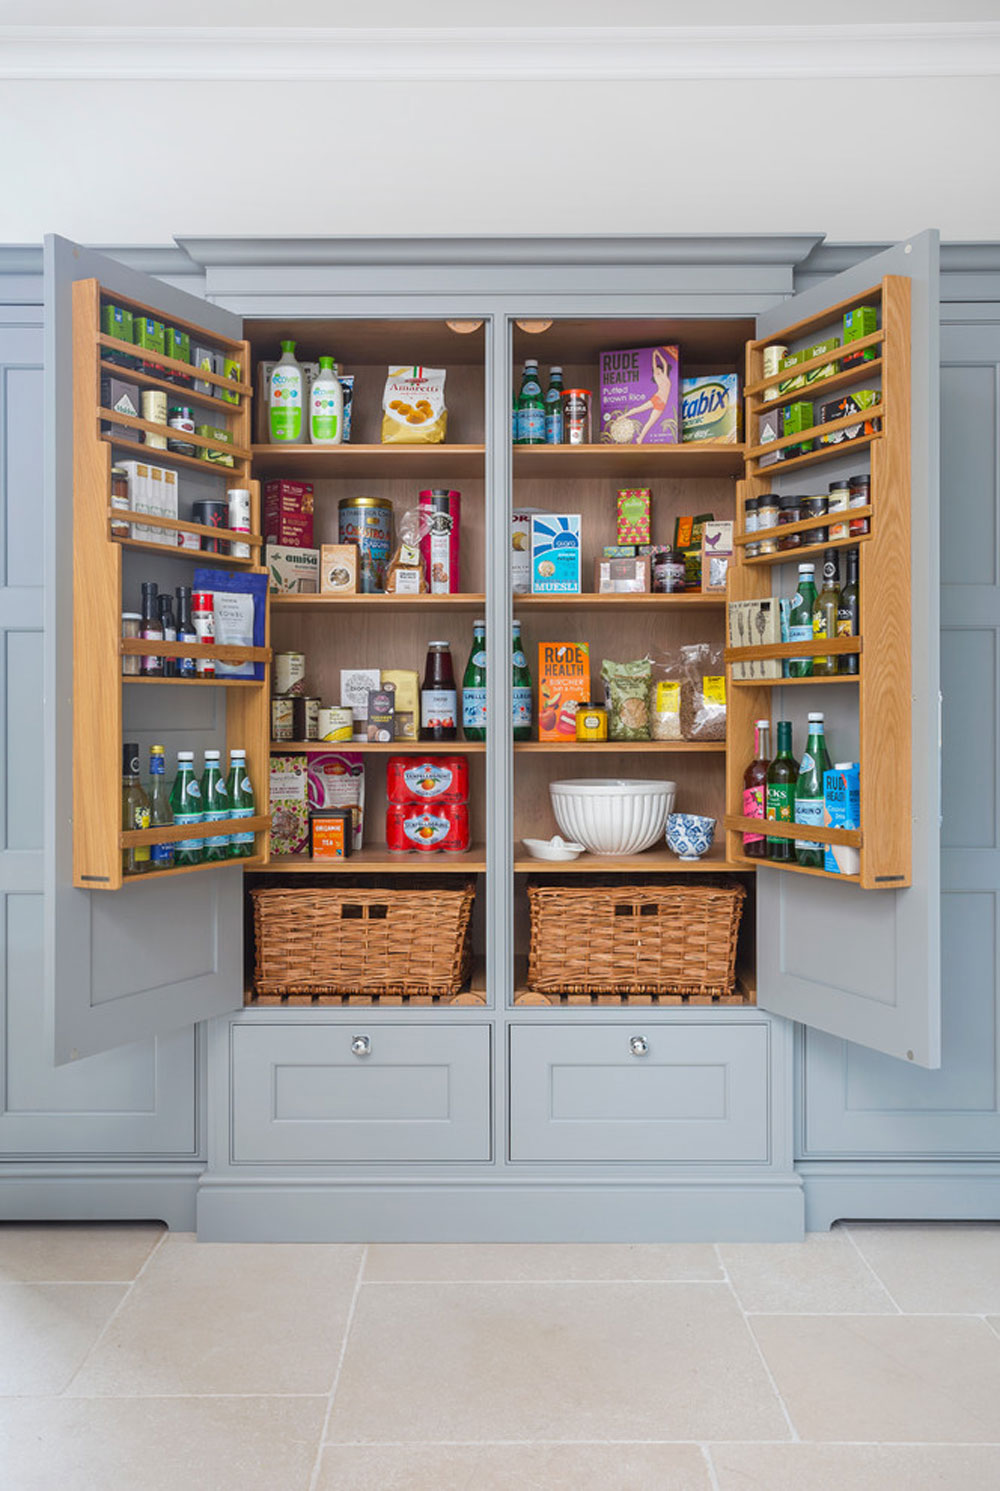 Hampshire-by-Lewis-Alderson-Co.  Pantry cabinet ideas: shelving and storage ideas for your kitchen